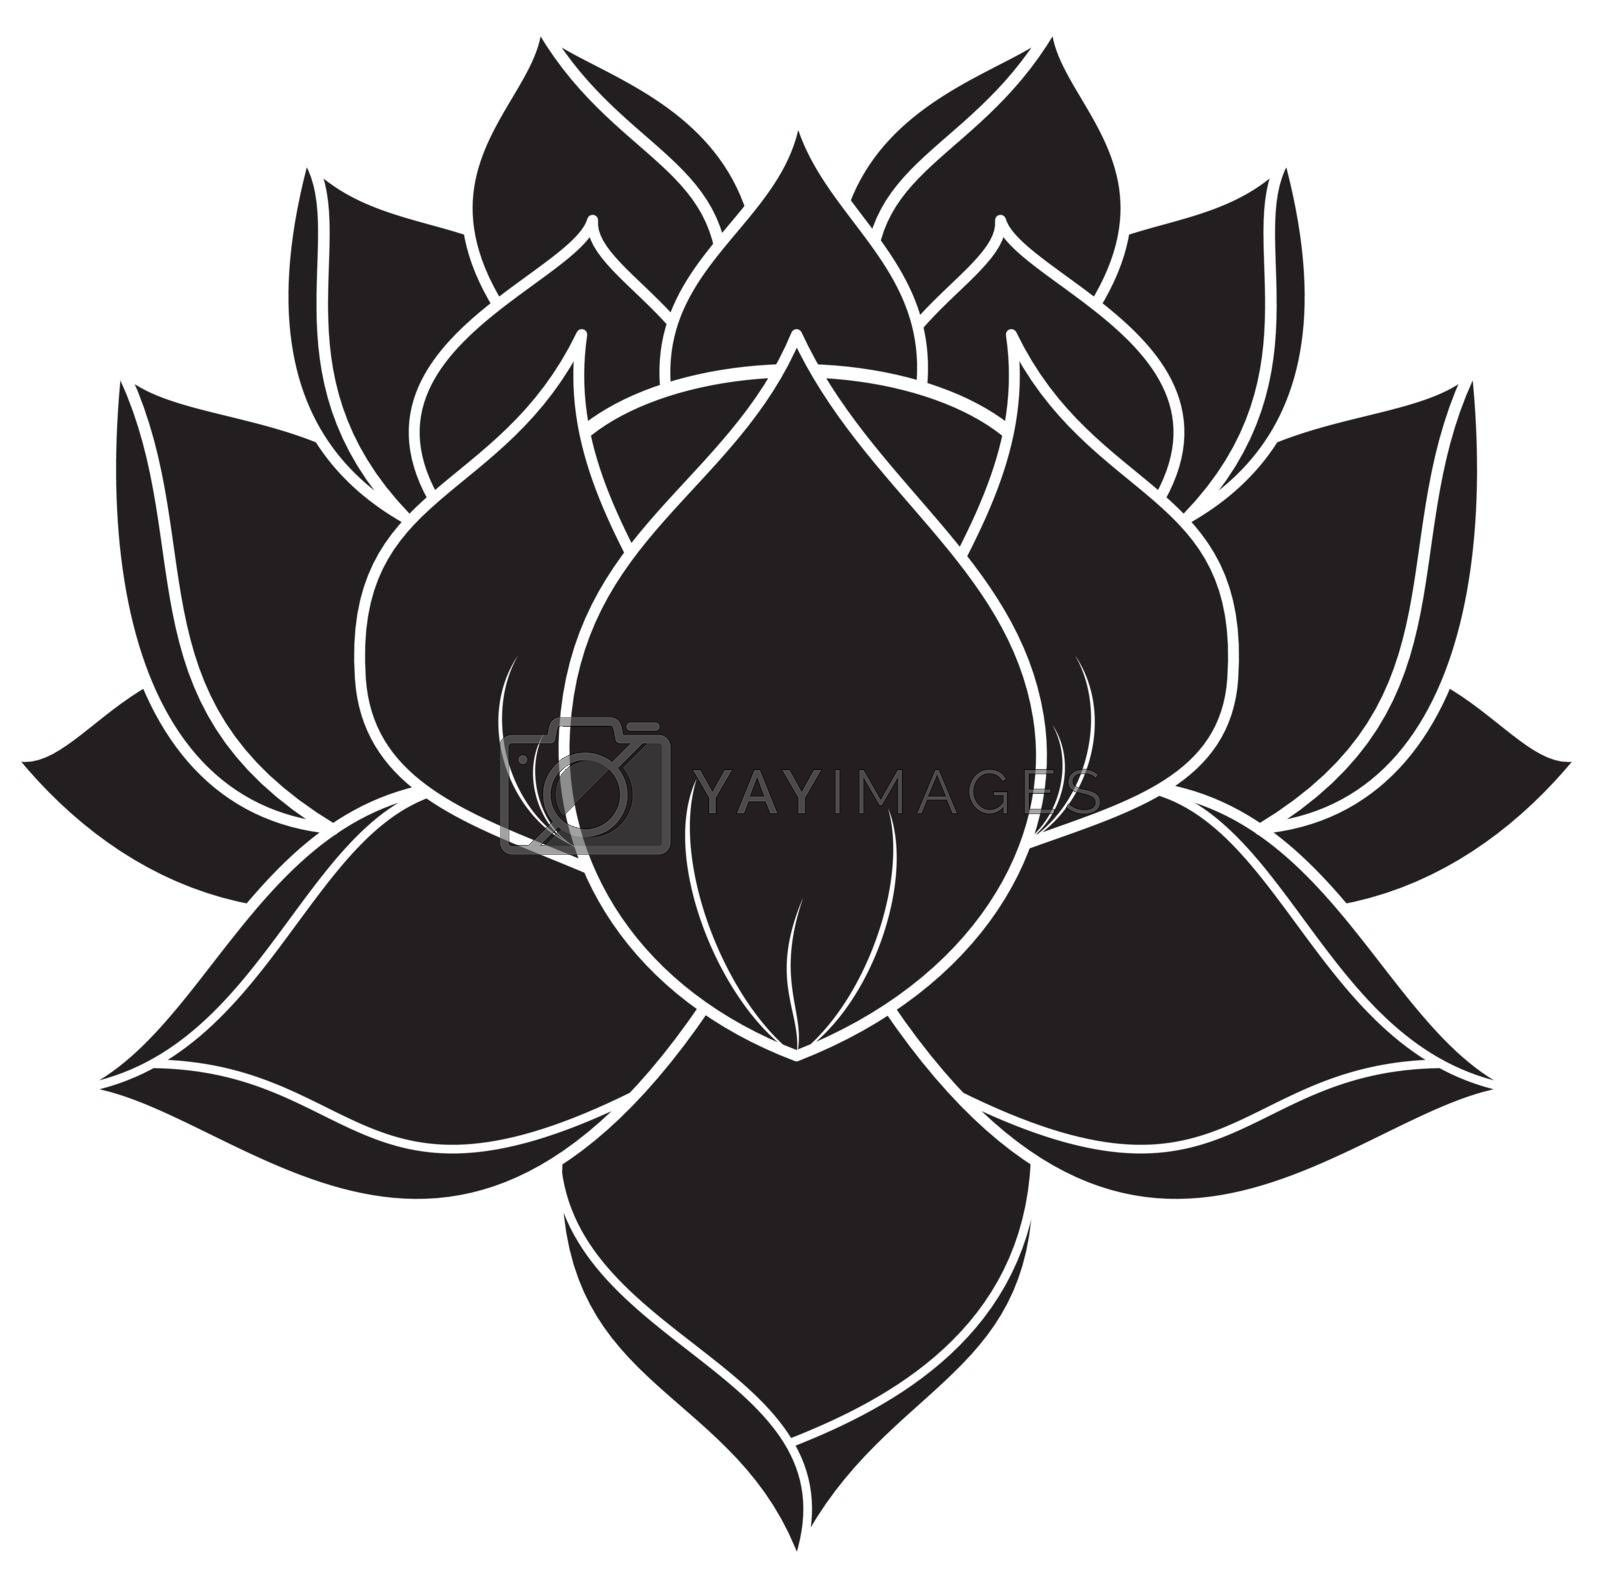 Royalty free image of Lotus Silhouette by silverrose1